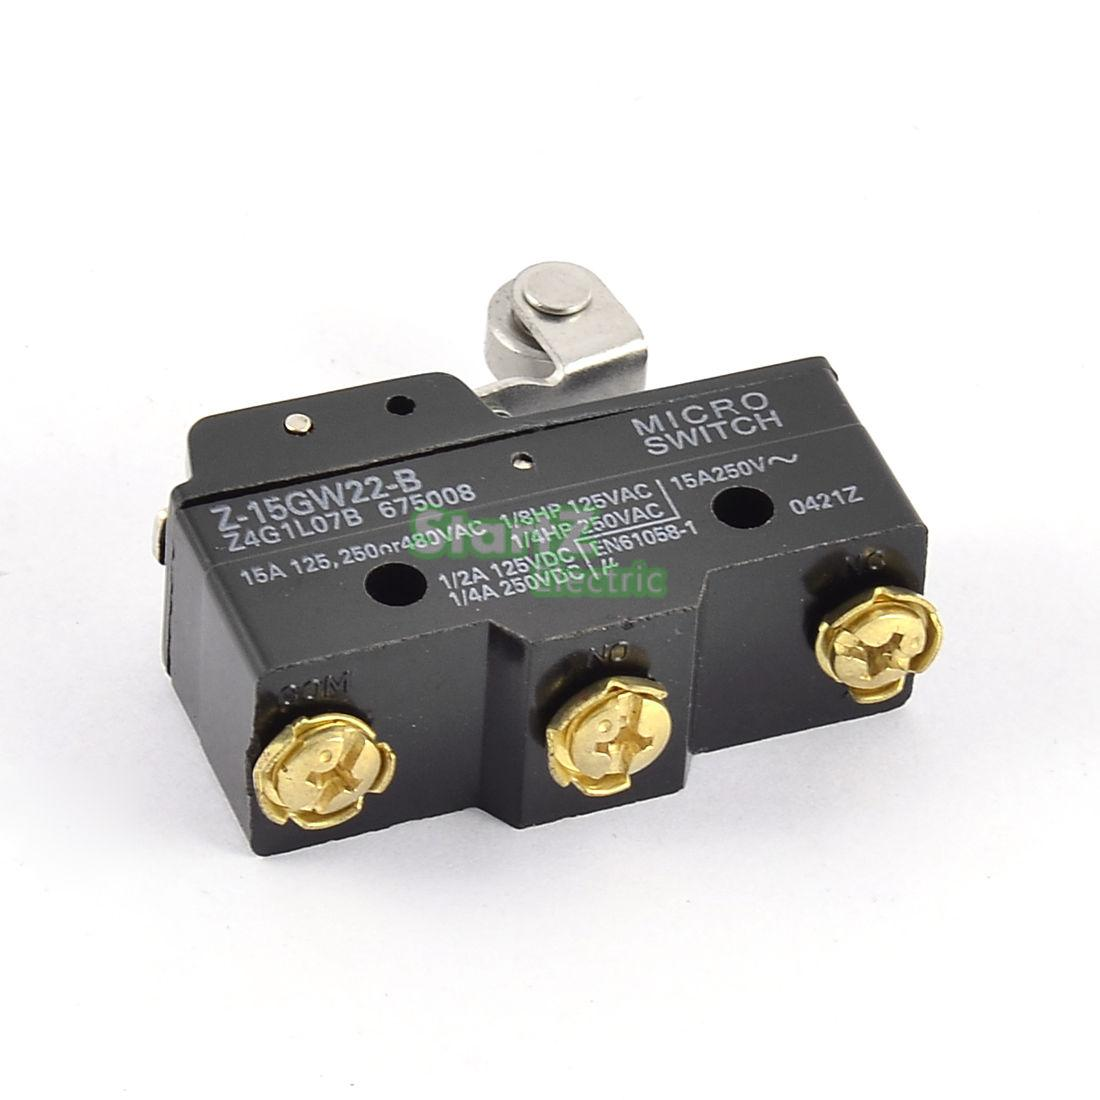 2Pcs  Short Roller Hinge Normally Open/Close Micro Lever Limit Switch  Z-15GW22-B